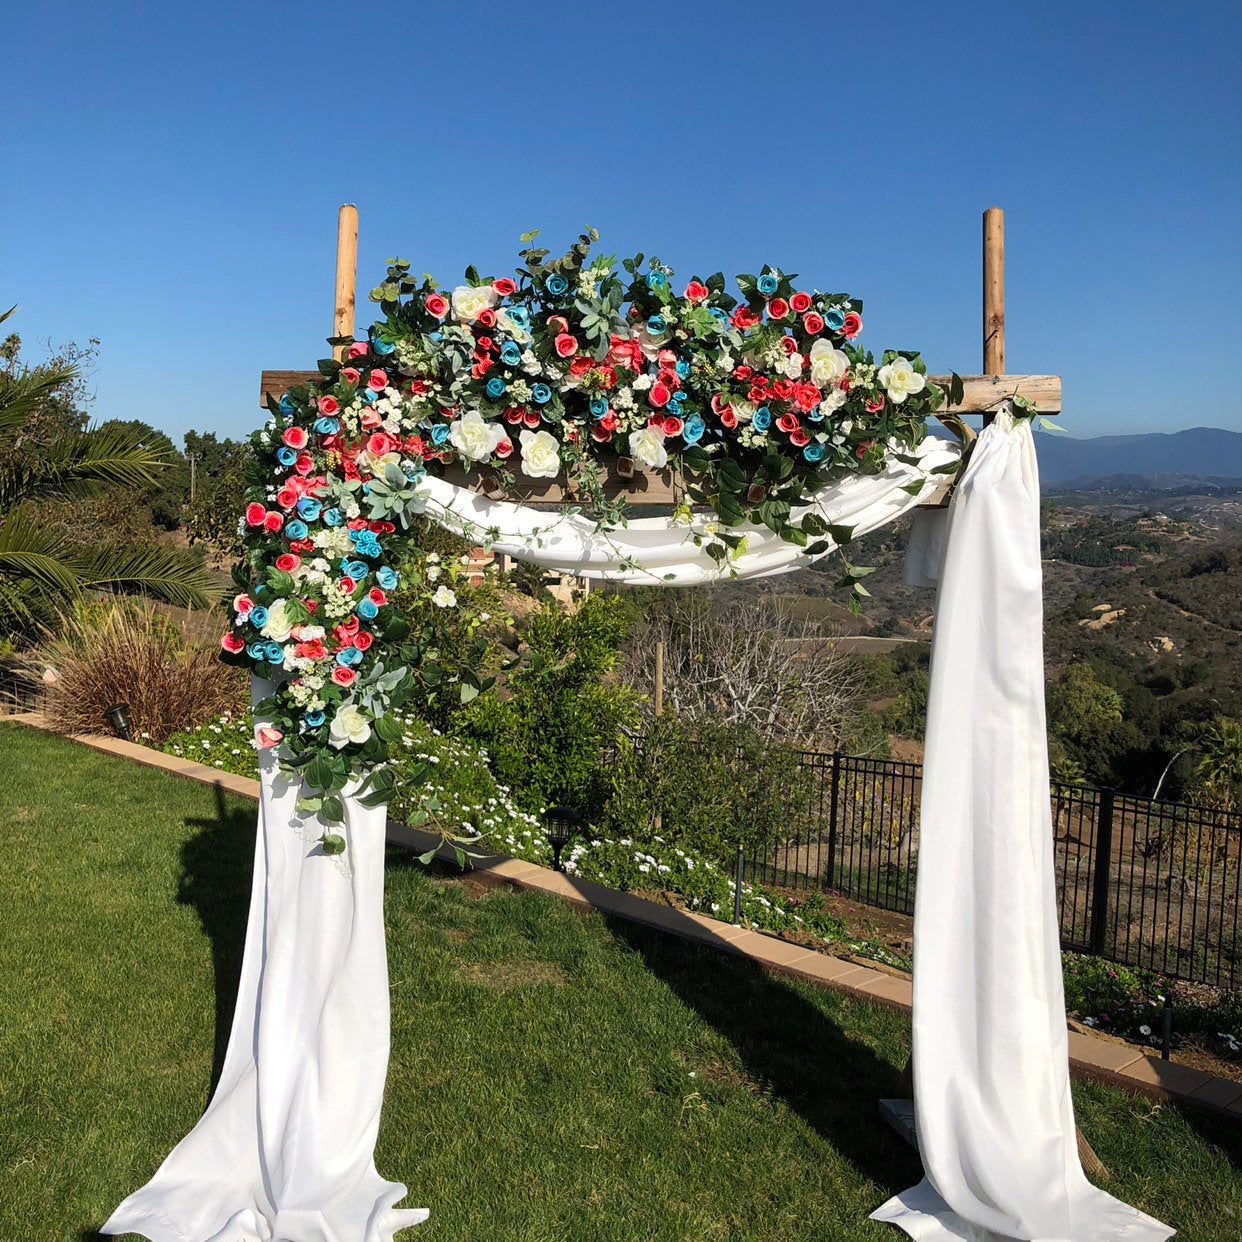 Sale Wedding Arch Flowers Wedding Centerpieces Circle Arch Etsy In 2020 Wedding Arch Flowers Flower Centerpieces Wedding Arch Flowers